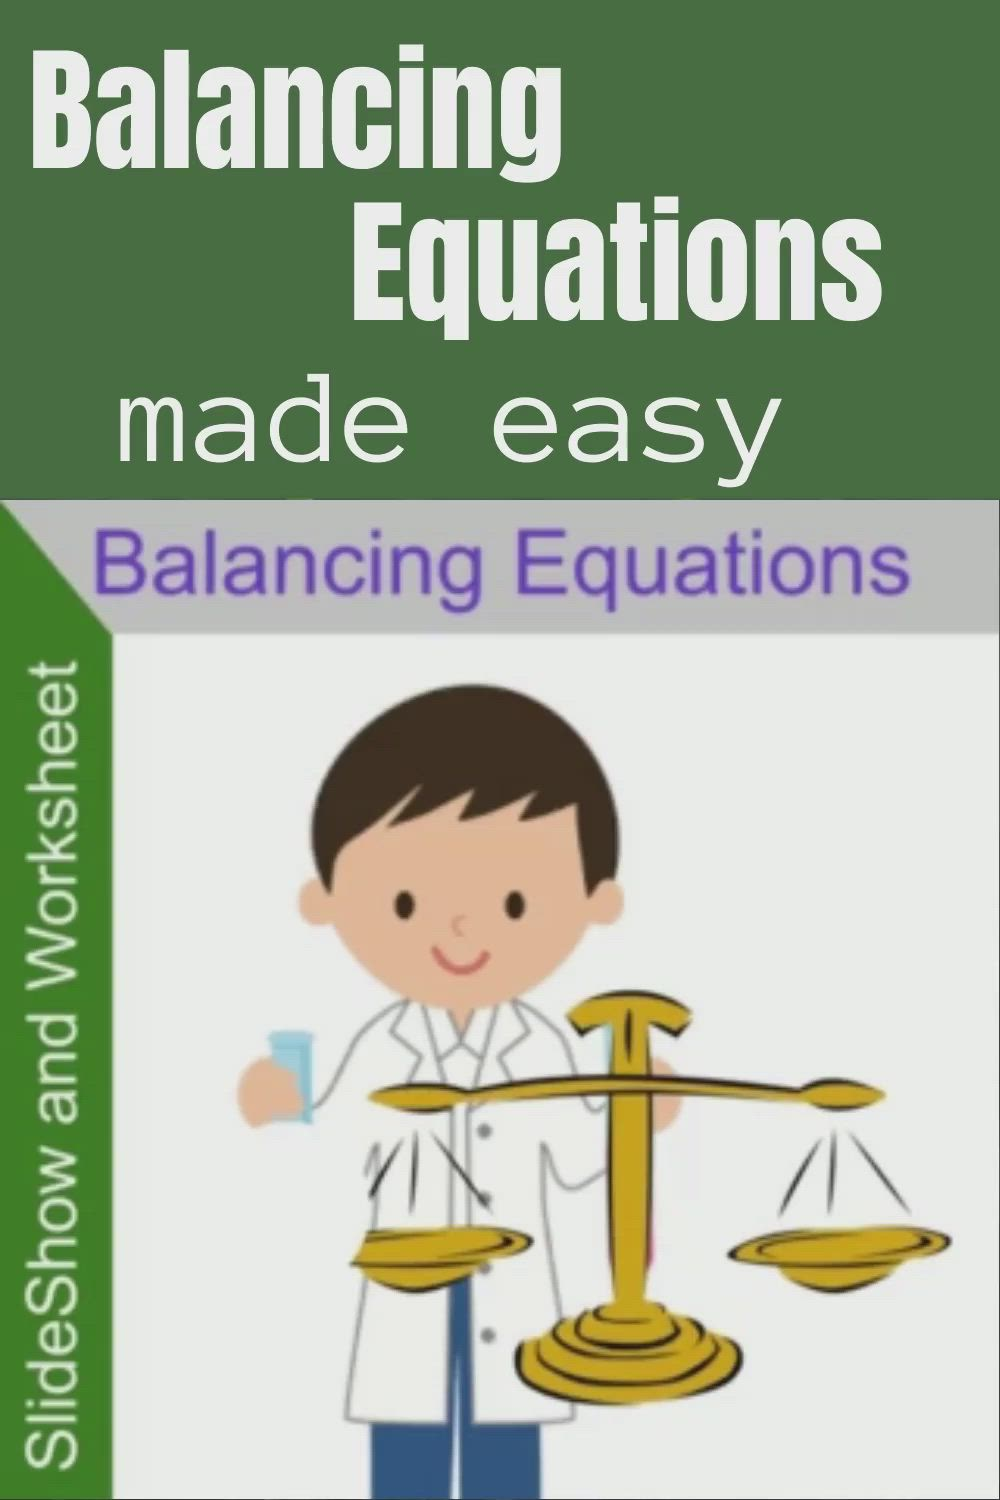 Critical Thinking For First Graders First Grade Math Balancing Equations Equations